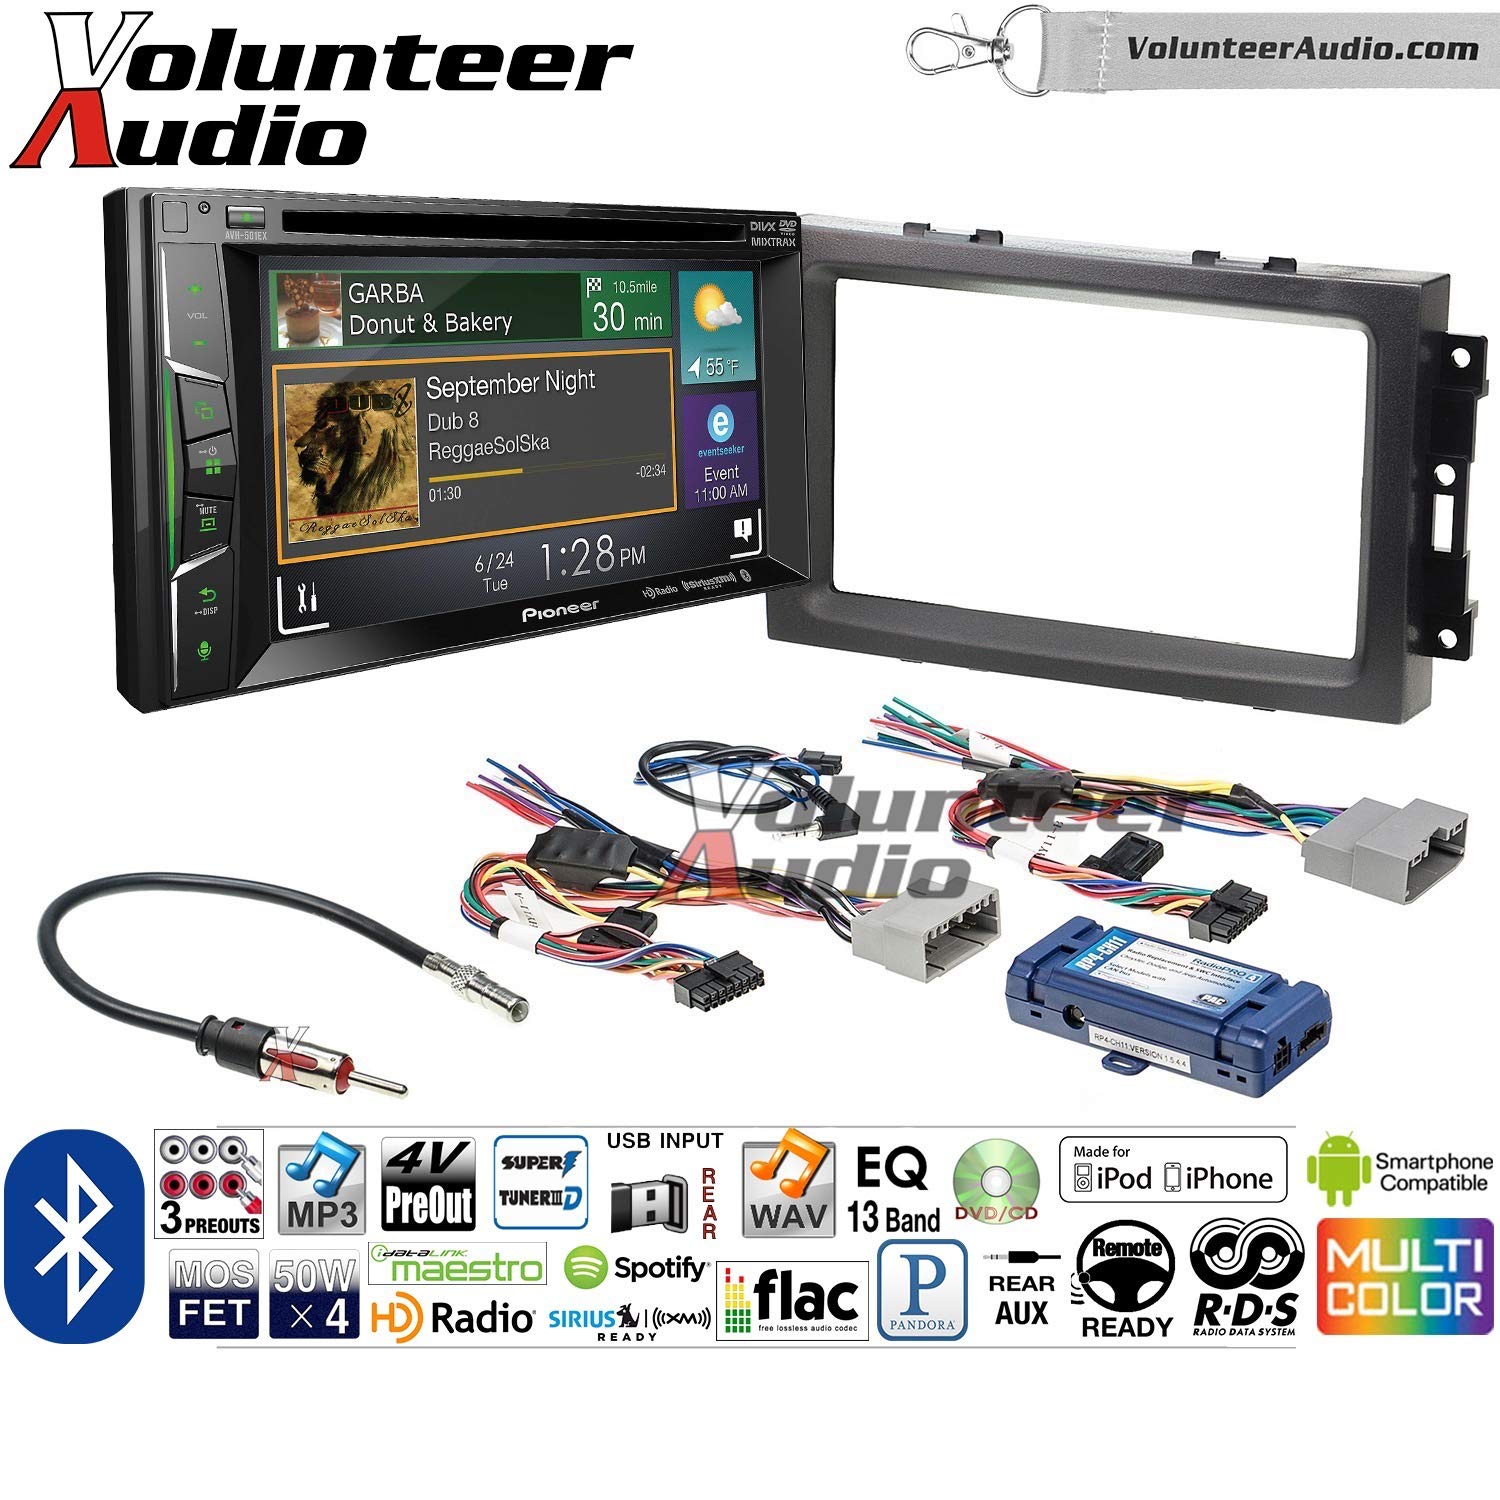 Volunteer Audio Pioneer AVH-501EX Double Din Radio Install Kit with DVD/CD Player Bluetooth Fits 2007-2008 Ram, 2006-2007 Chrysler 300 (Retains steering wheel controls)